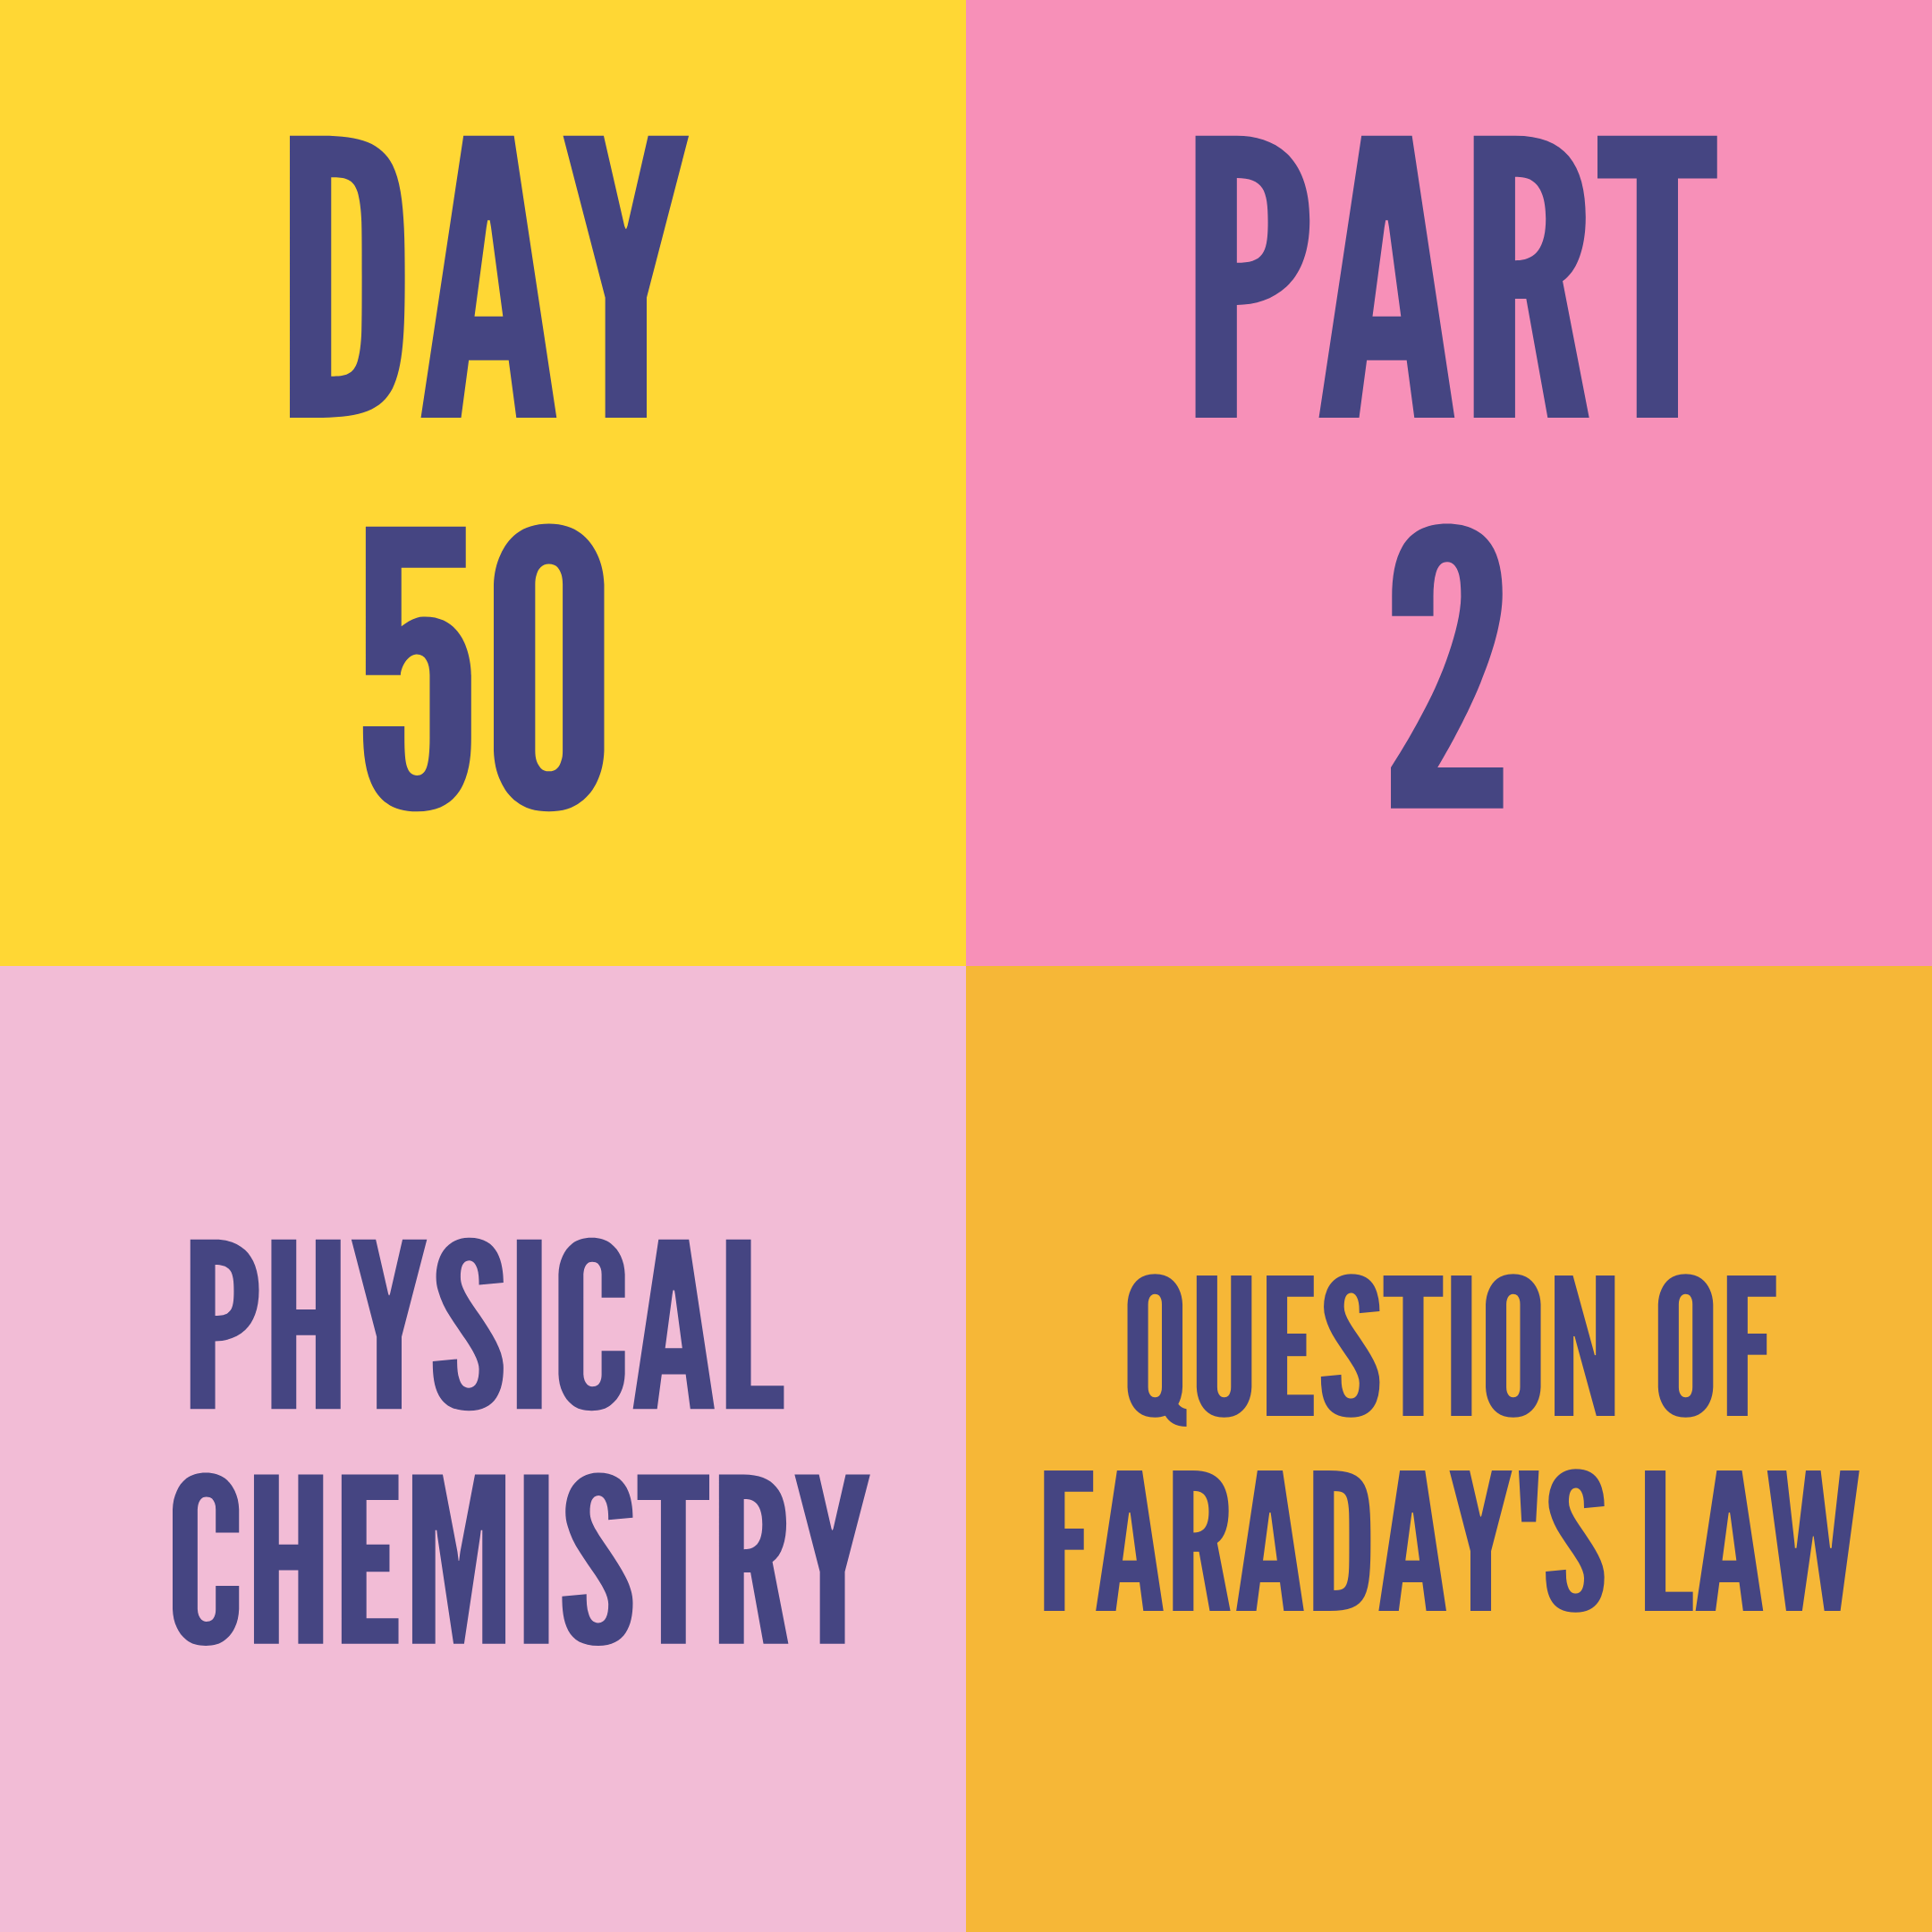 DAY-50 PART-2 QUESTION OF FARADAY'S LAW